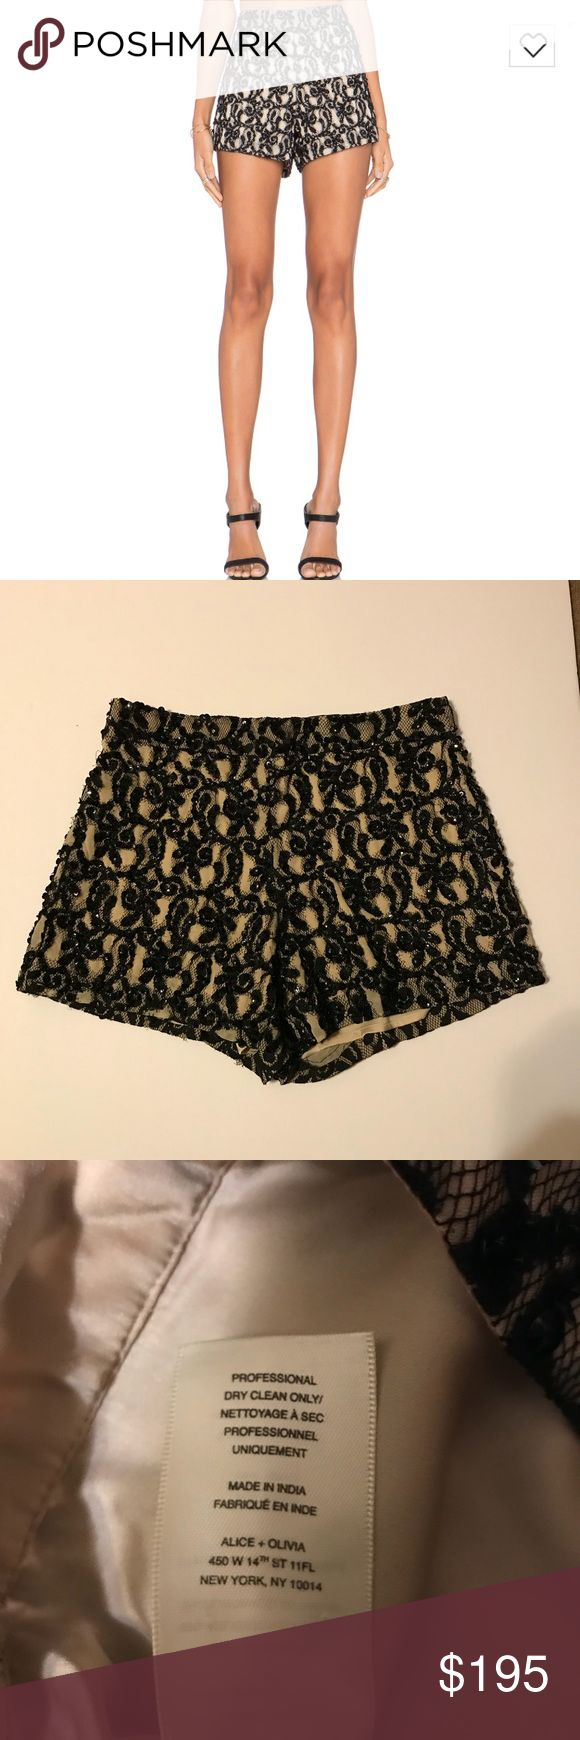 Alice + Olivia embellished shorts Alice + Olivia Style #c506157765 Cream shorts with black lace and sequin details Original tag was removed for comfort of wear however brand tag with style number and brand name still intact. Please see photos Alice + Olivia Shorts